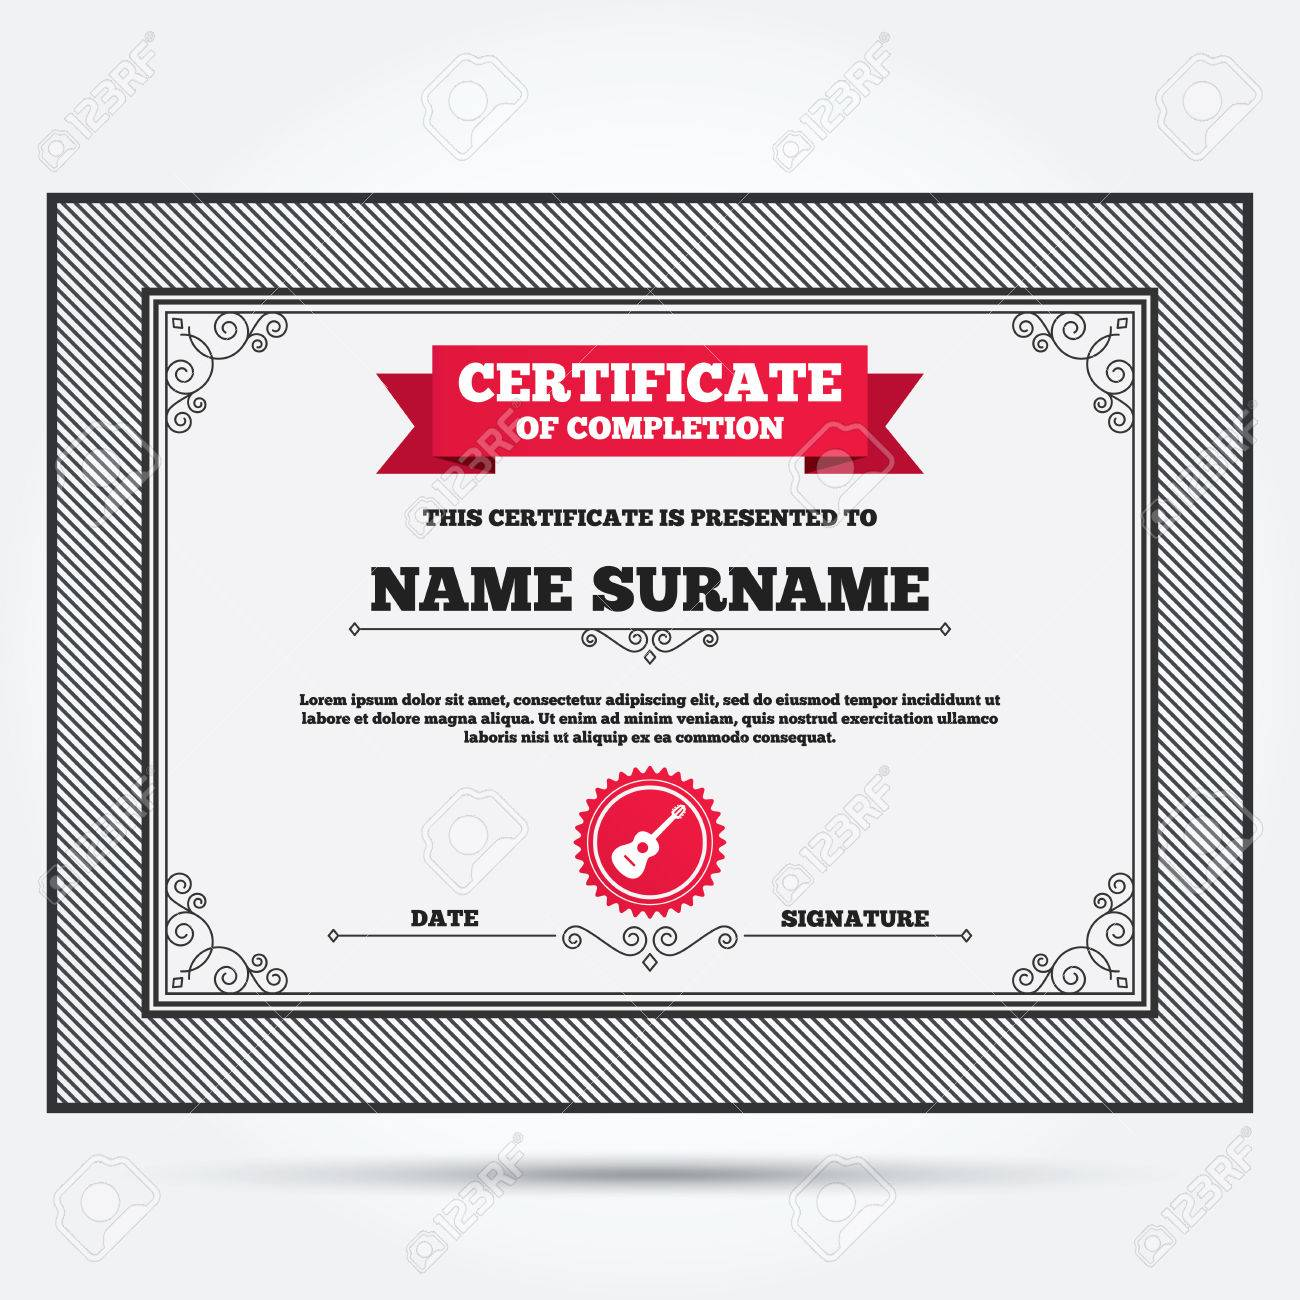 Certificate of completion acoustic guitar sign icon music symbol certificate of completion acoustic guitar sign icon music symbol template with vintage patterns alramifo Image collections